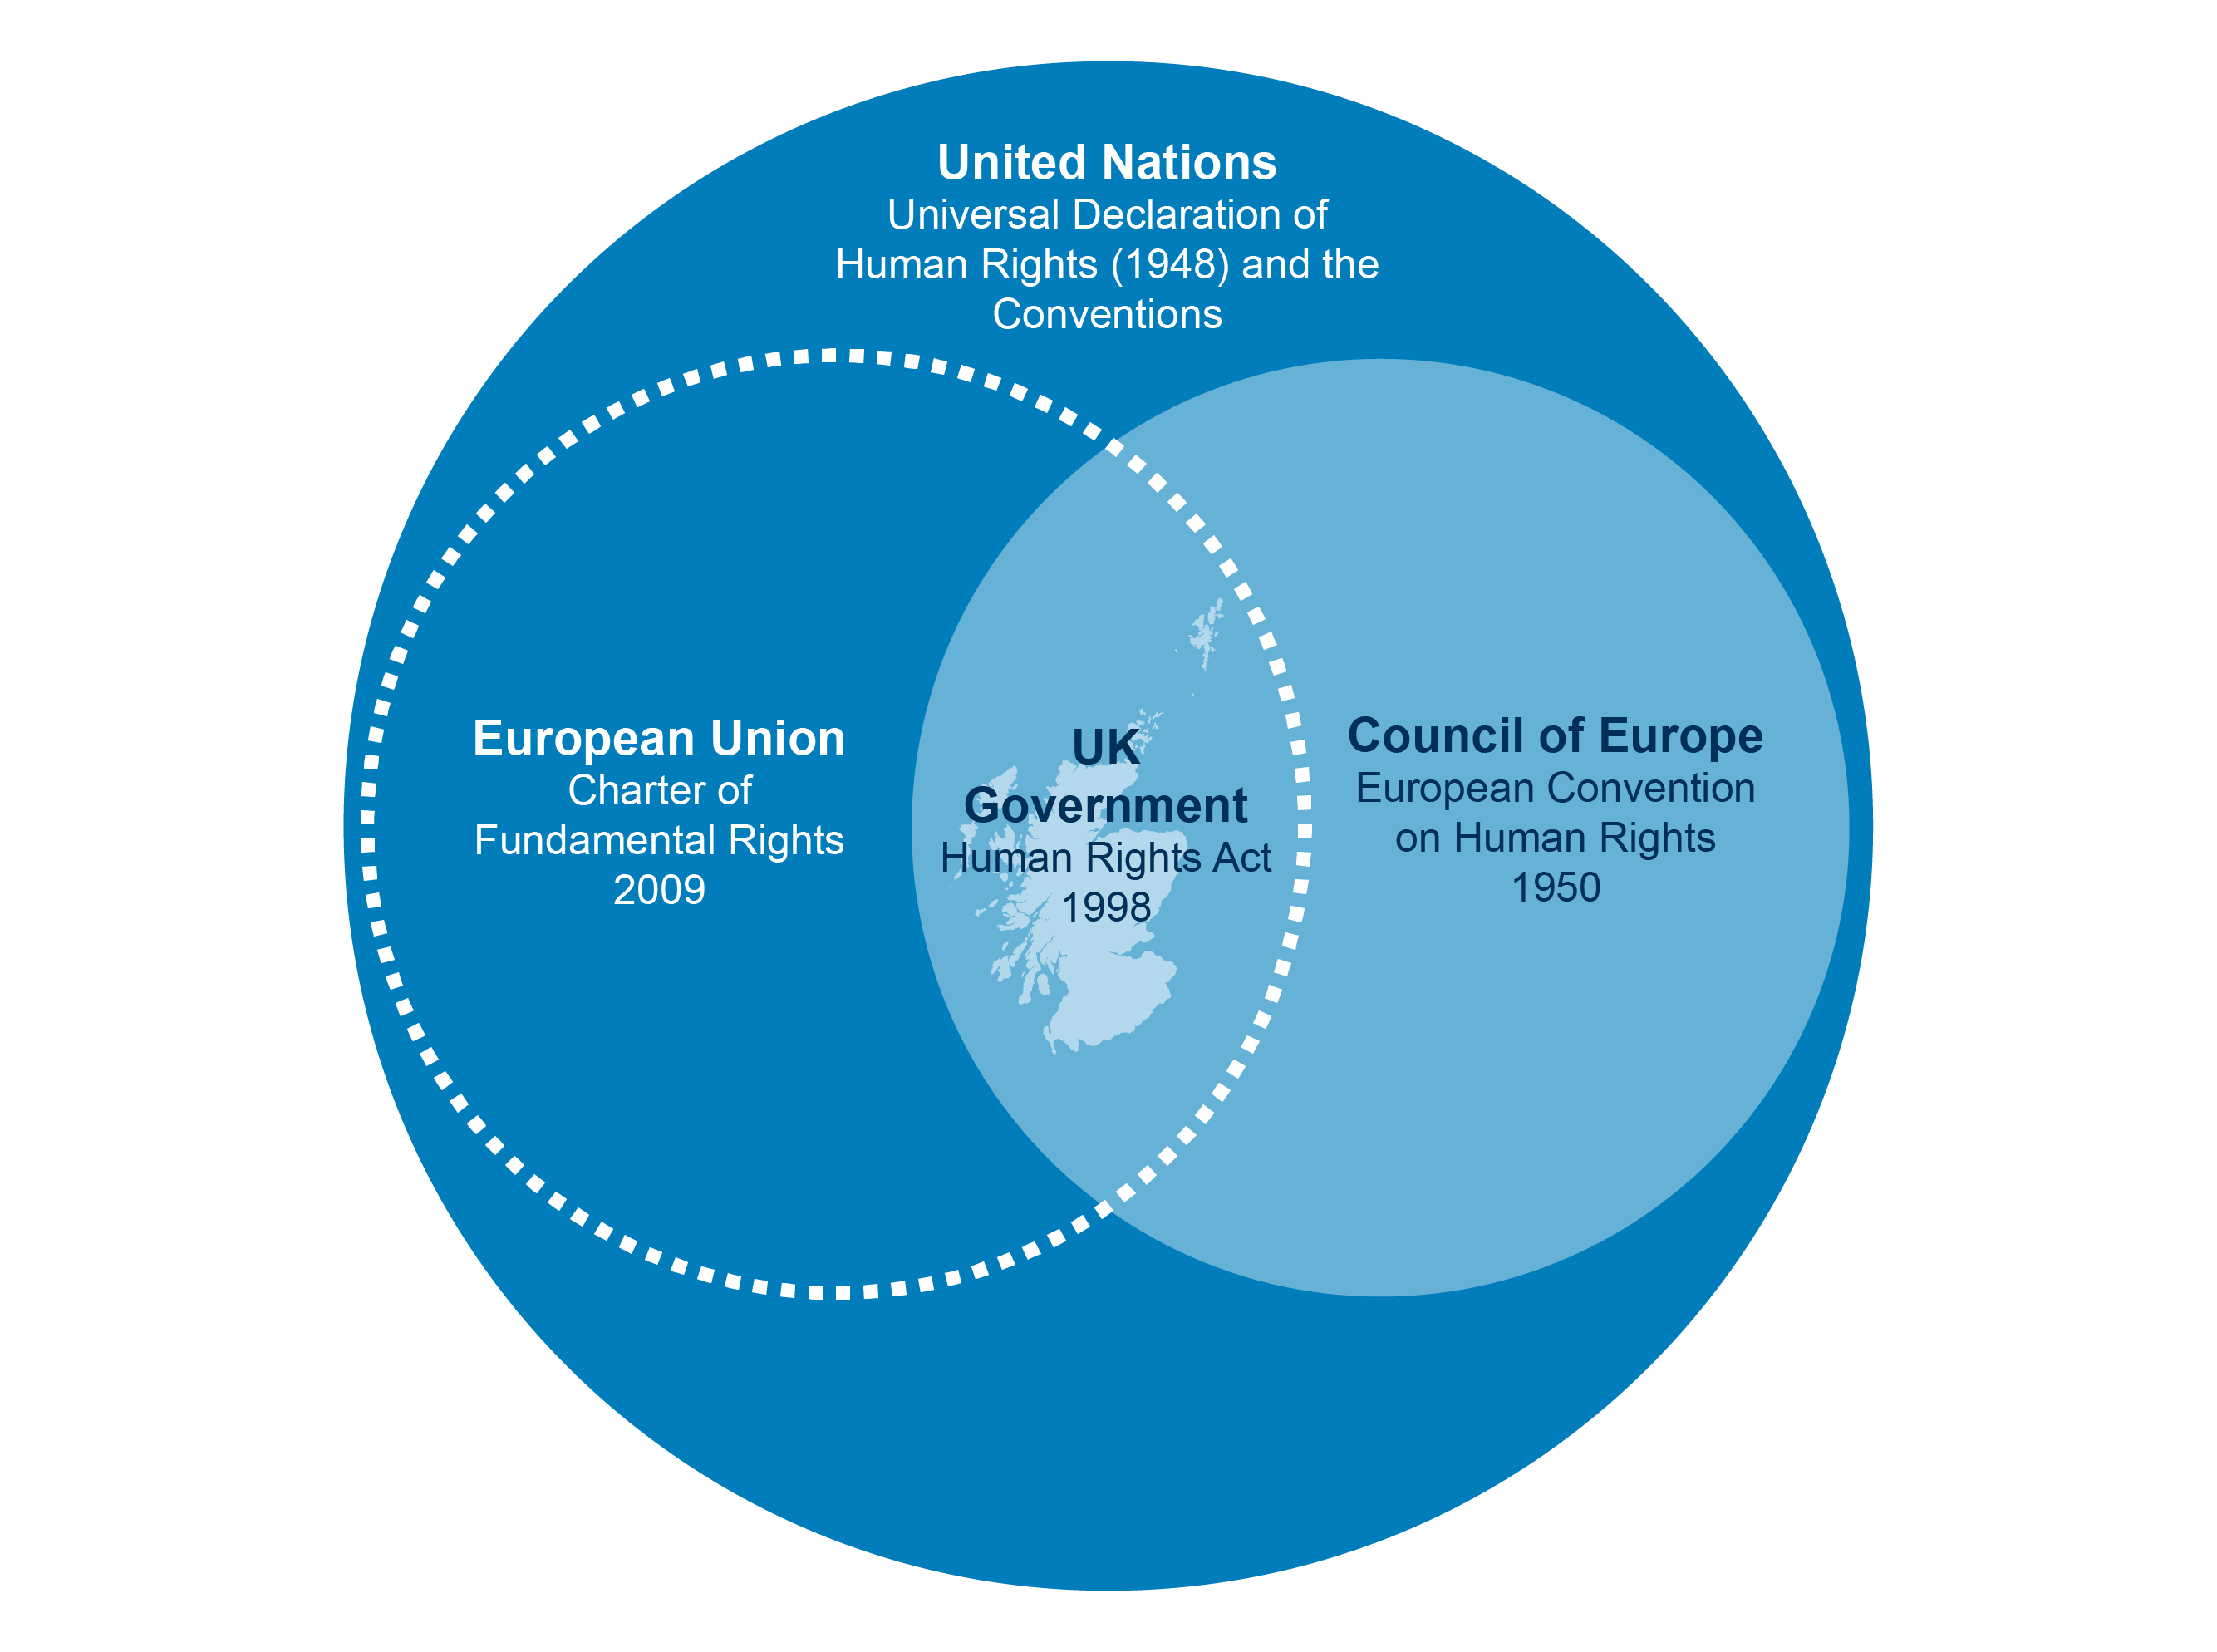 A diagram showing how the overlap between the European Union charter of fundamental rights 2009 and the  council of Europe European convention on human rights 1950 and the UK governments human rights act 1998